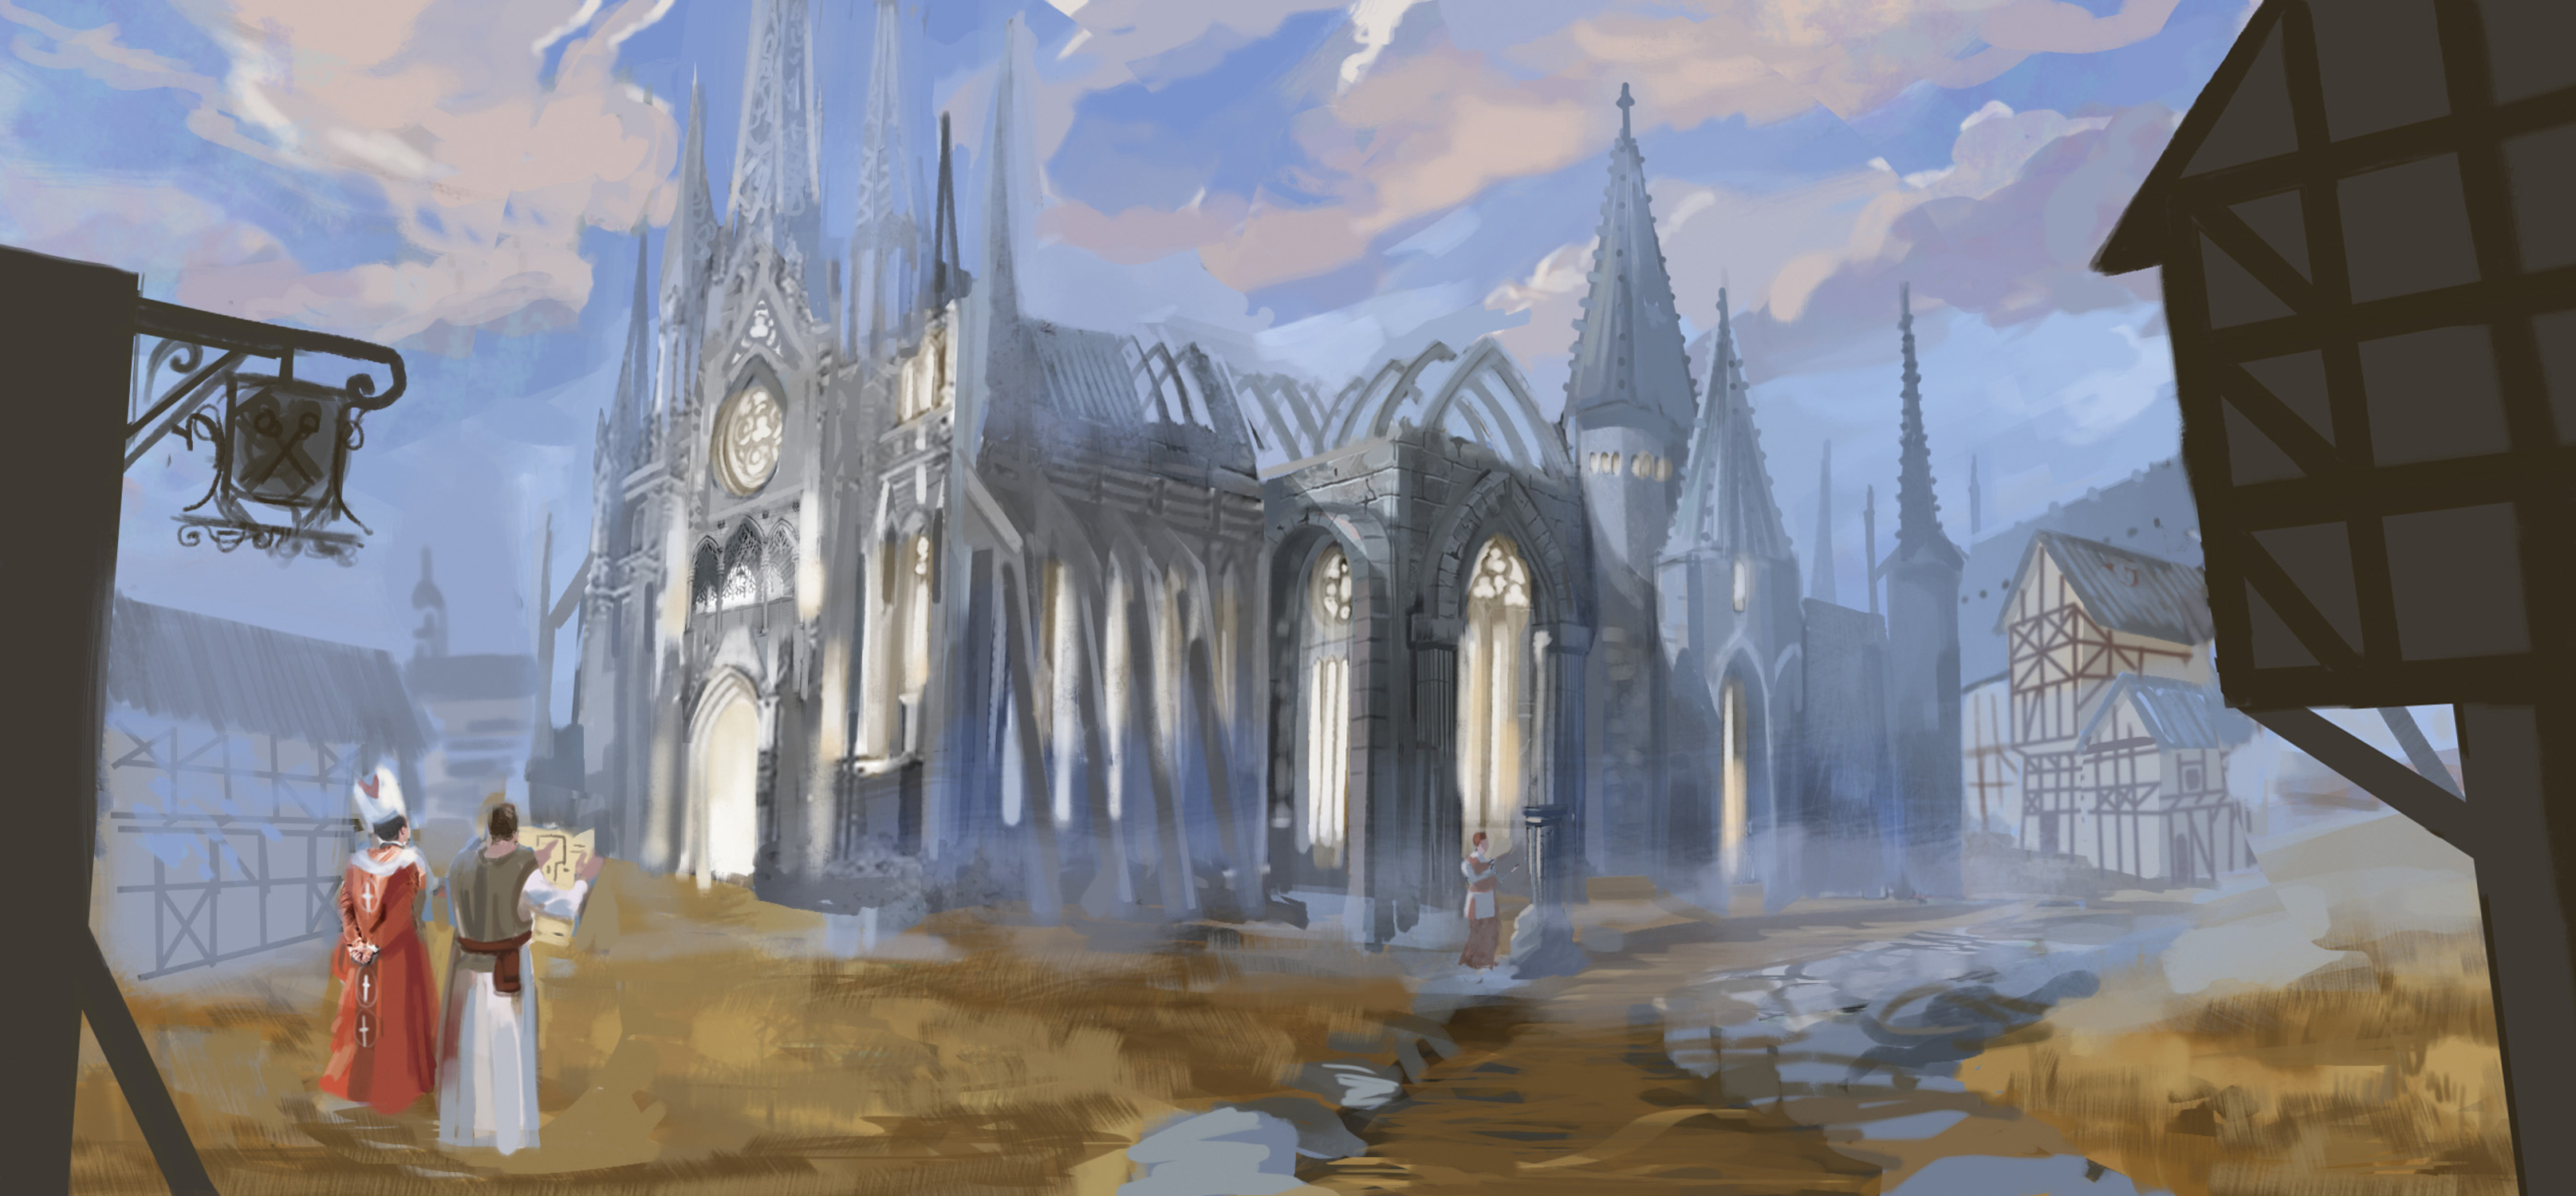 Building a Cathedral Artwork by Leah McKay